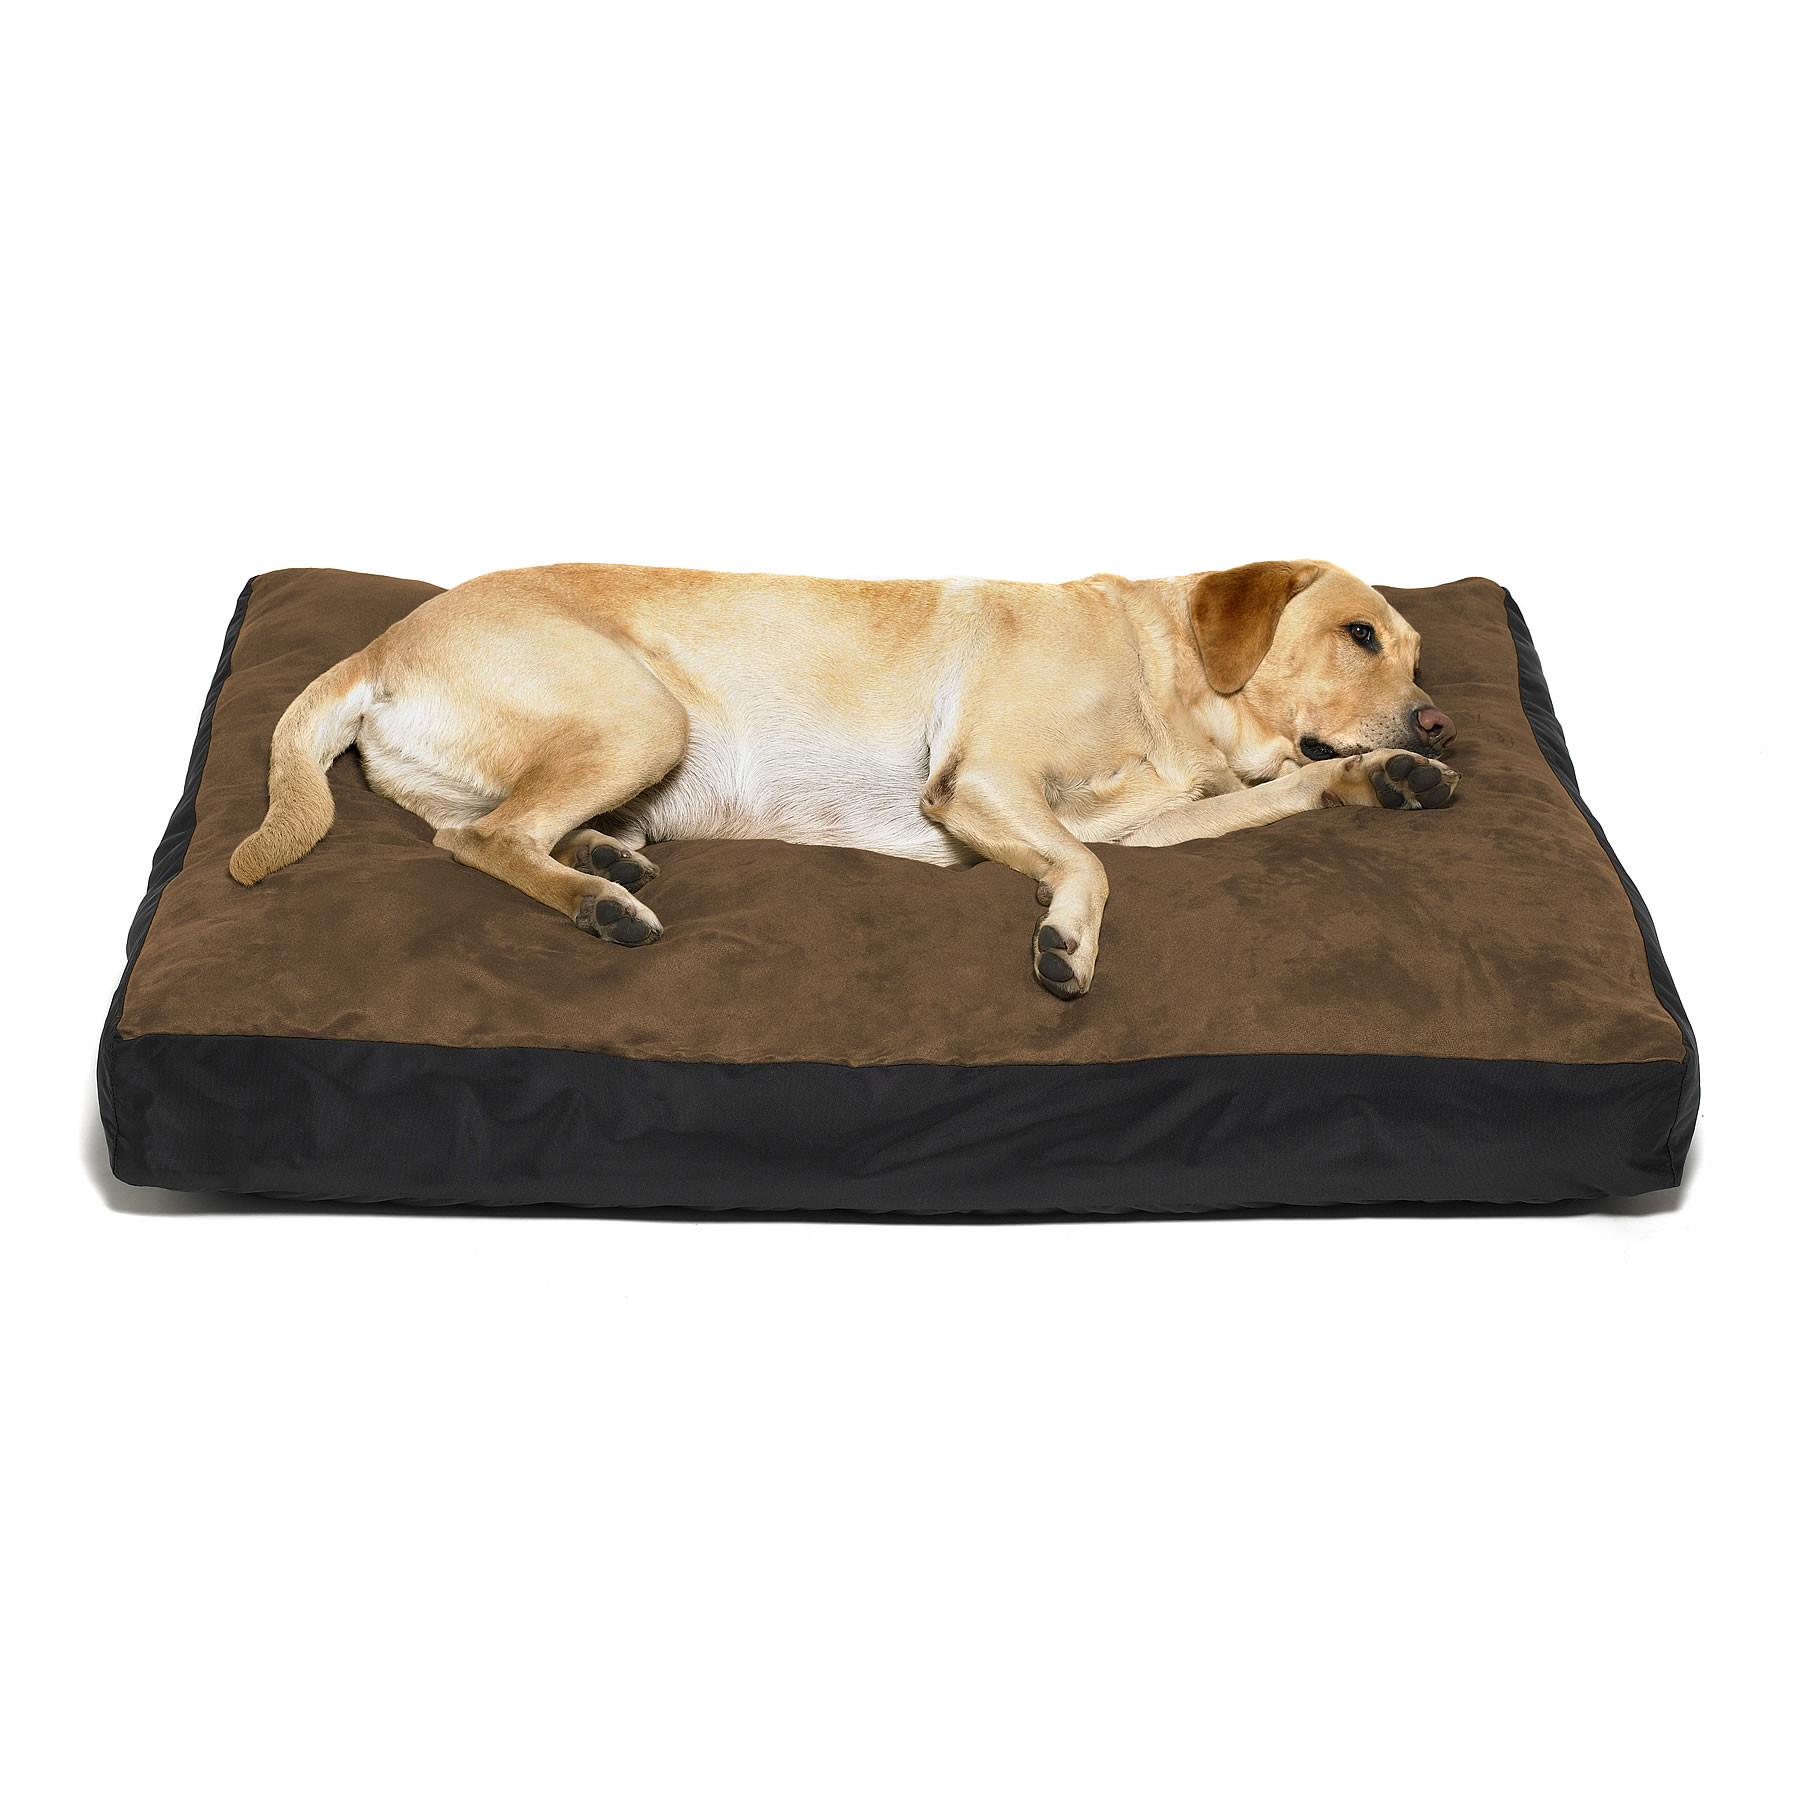 X Large Dog Bed Covers